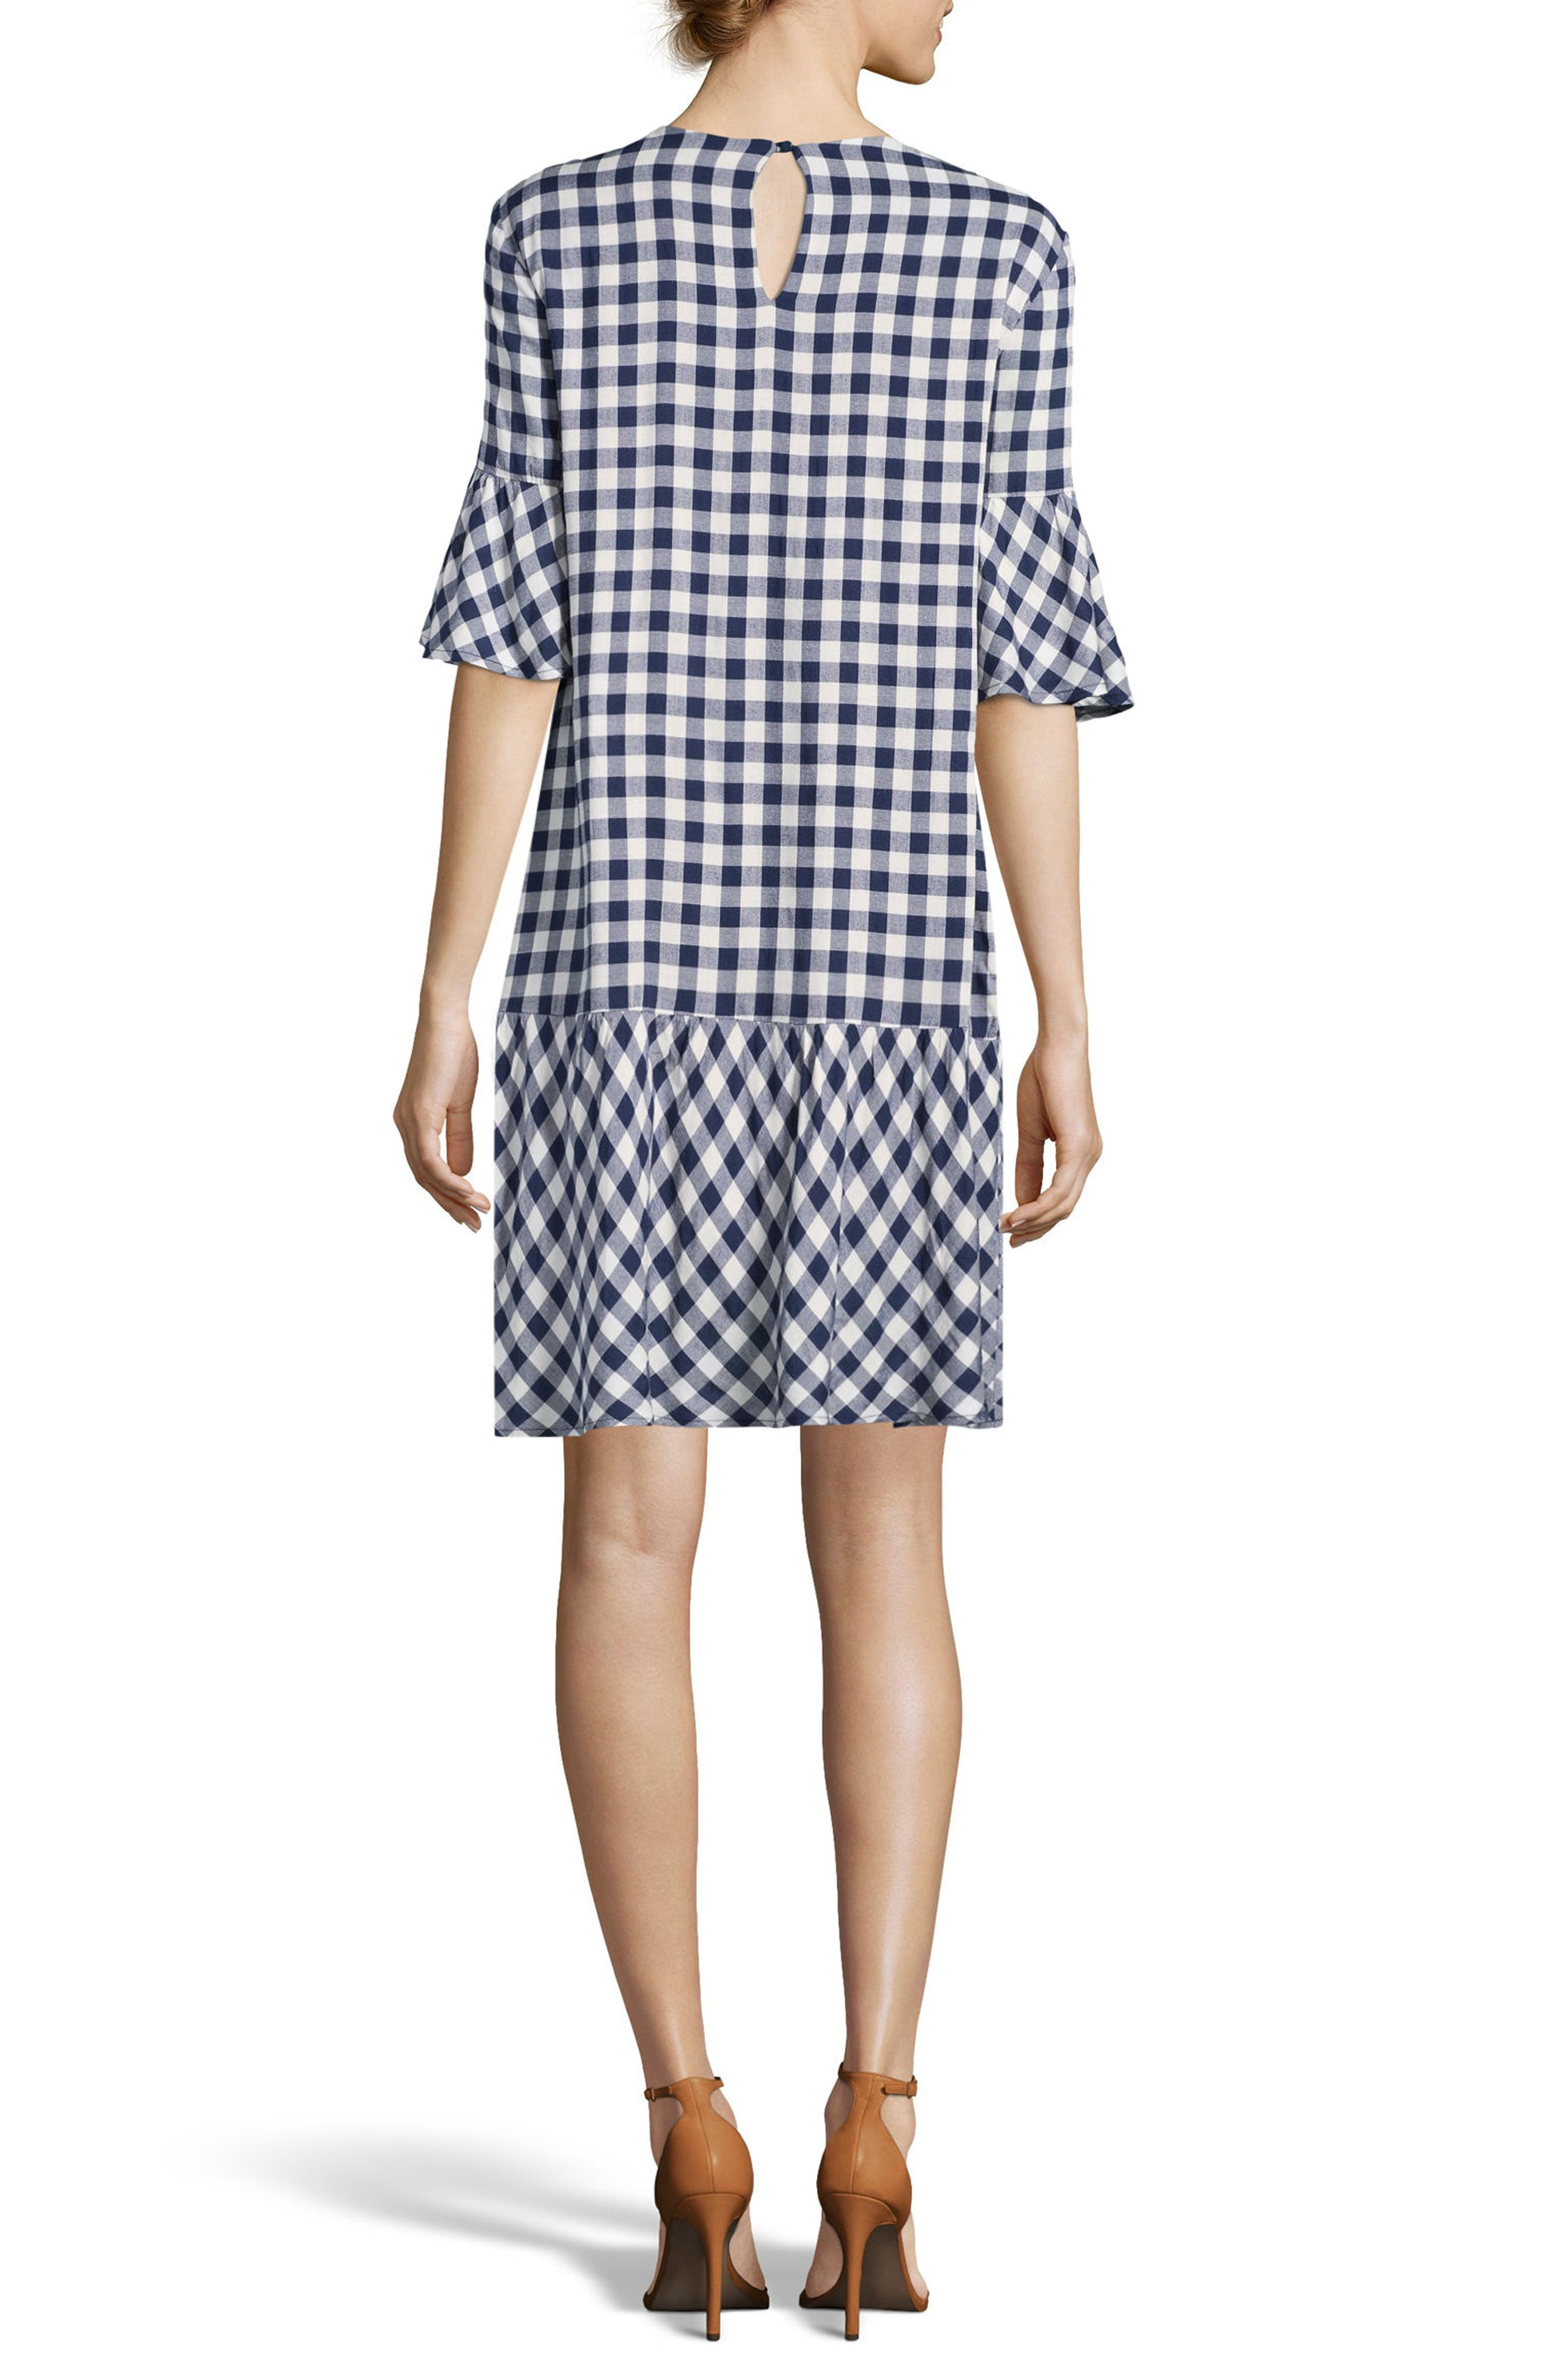 Embroidered Checker Shift Dress,                             Alternate thumbnail 2, color,                             411